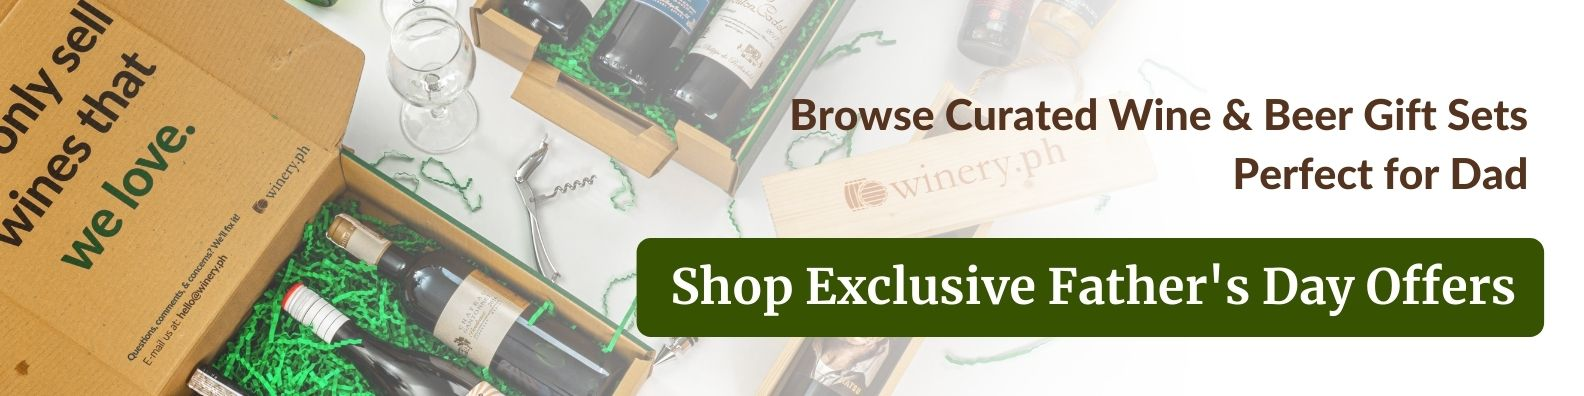 shop curated wine and gift sets for father's day 2021